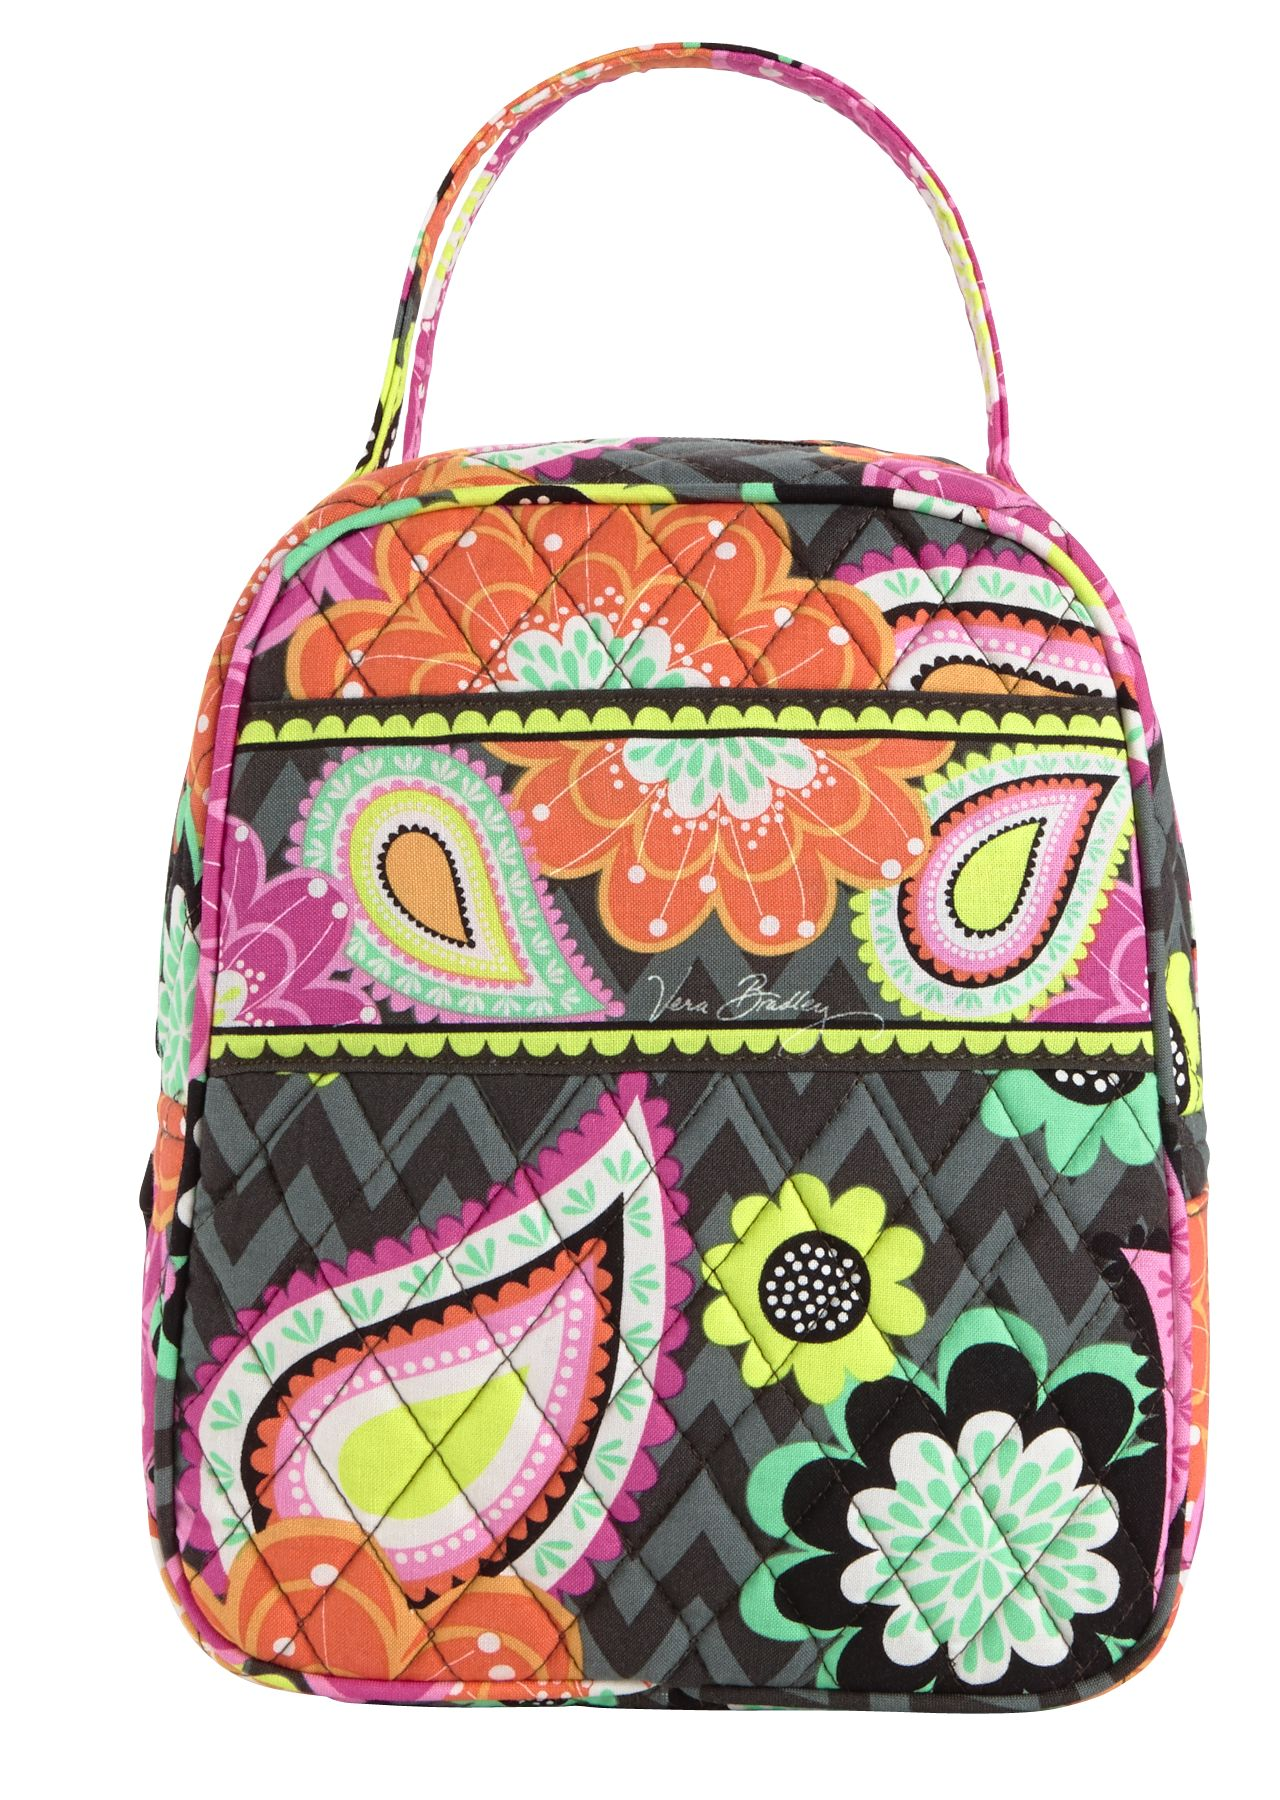 7647f03dbc67 Vera Bradley Katalina Pink Diamonds Backpack- Fenix Toulouse Handball